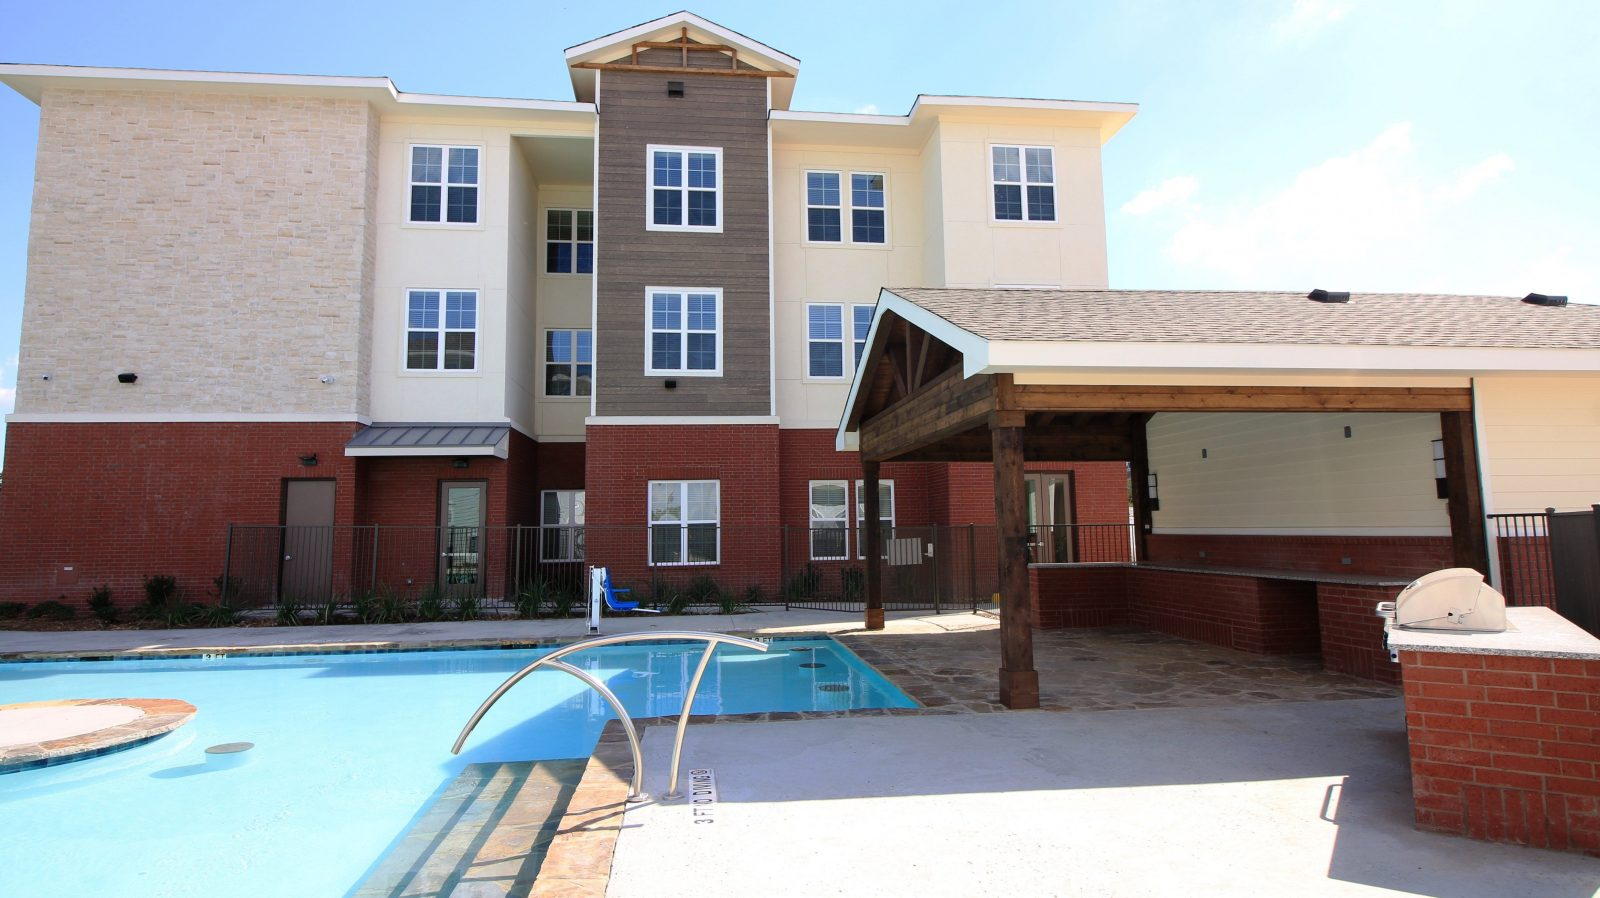 18 Apartments In College Station Tx (Avail Now) von The Enclave College Station Tx Photo